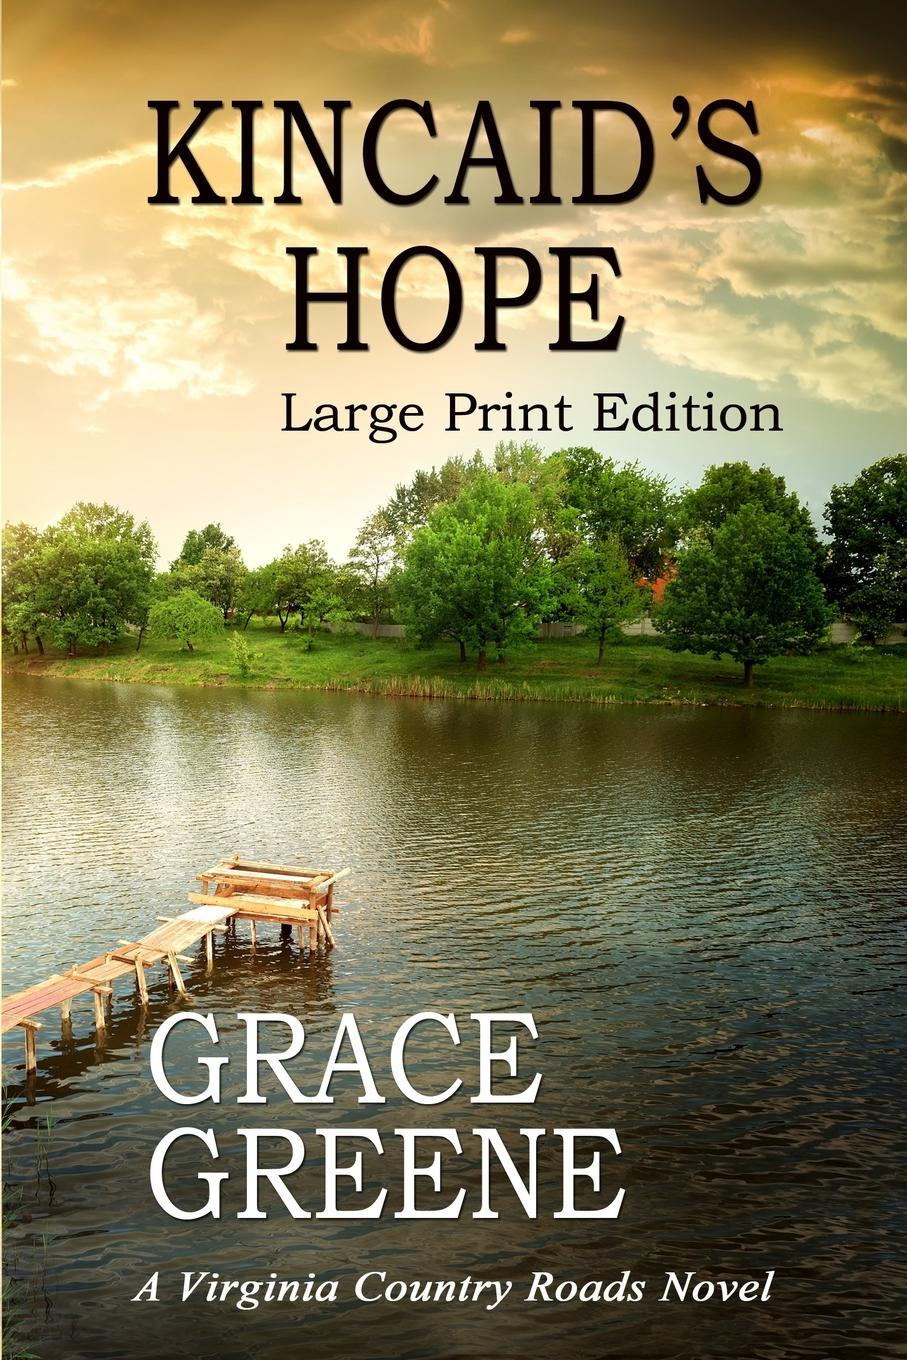 Grace Greene Kincaid.s Hope (Large Print). A Virginia Country Roads Novel